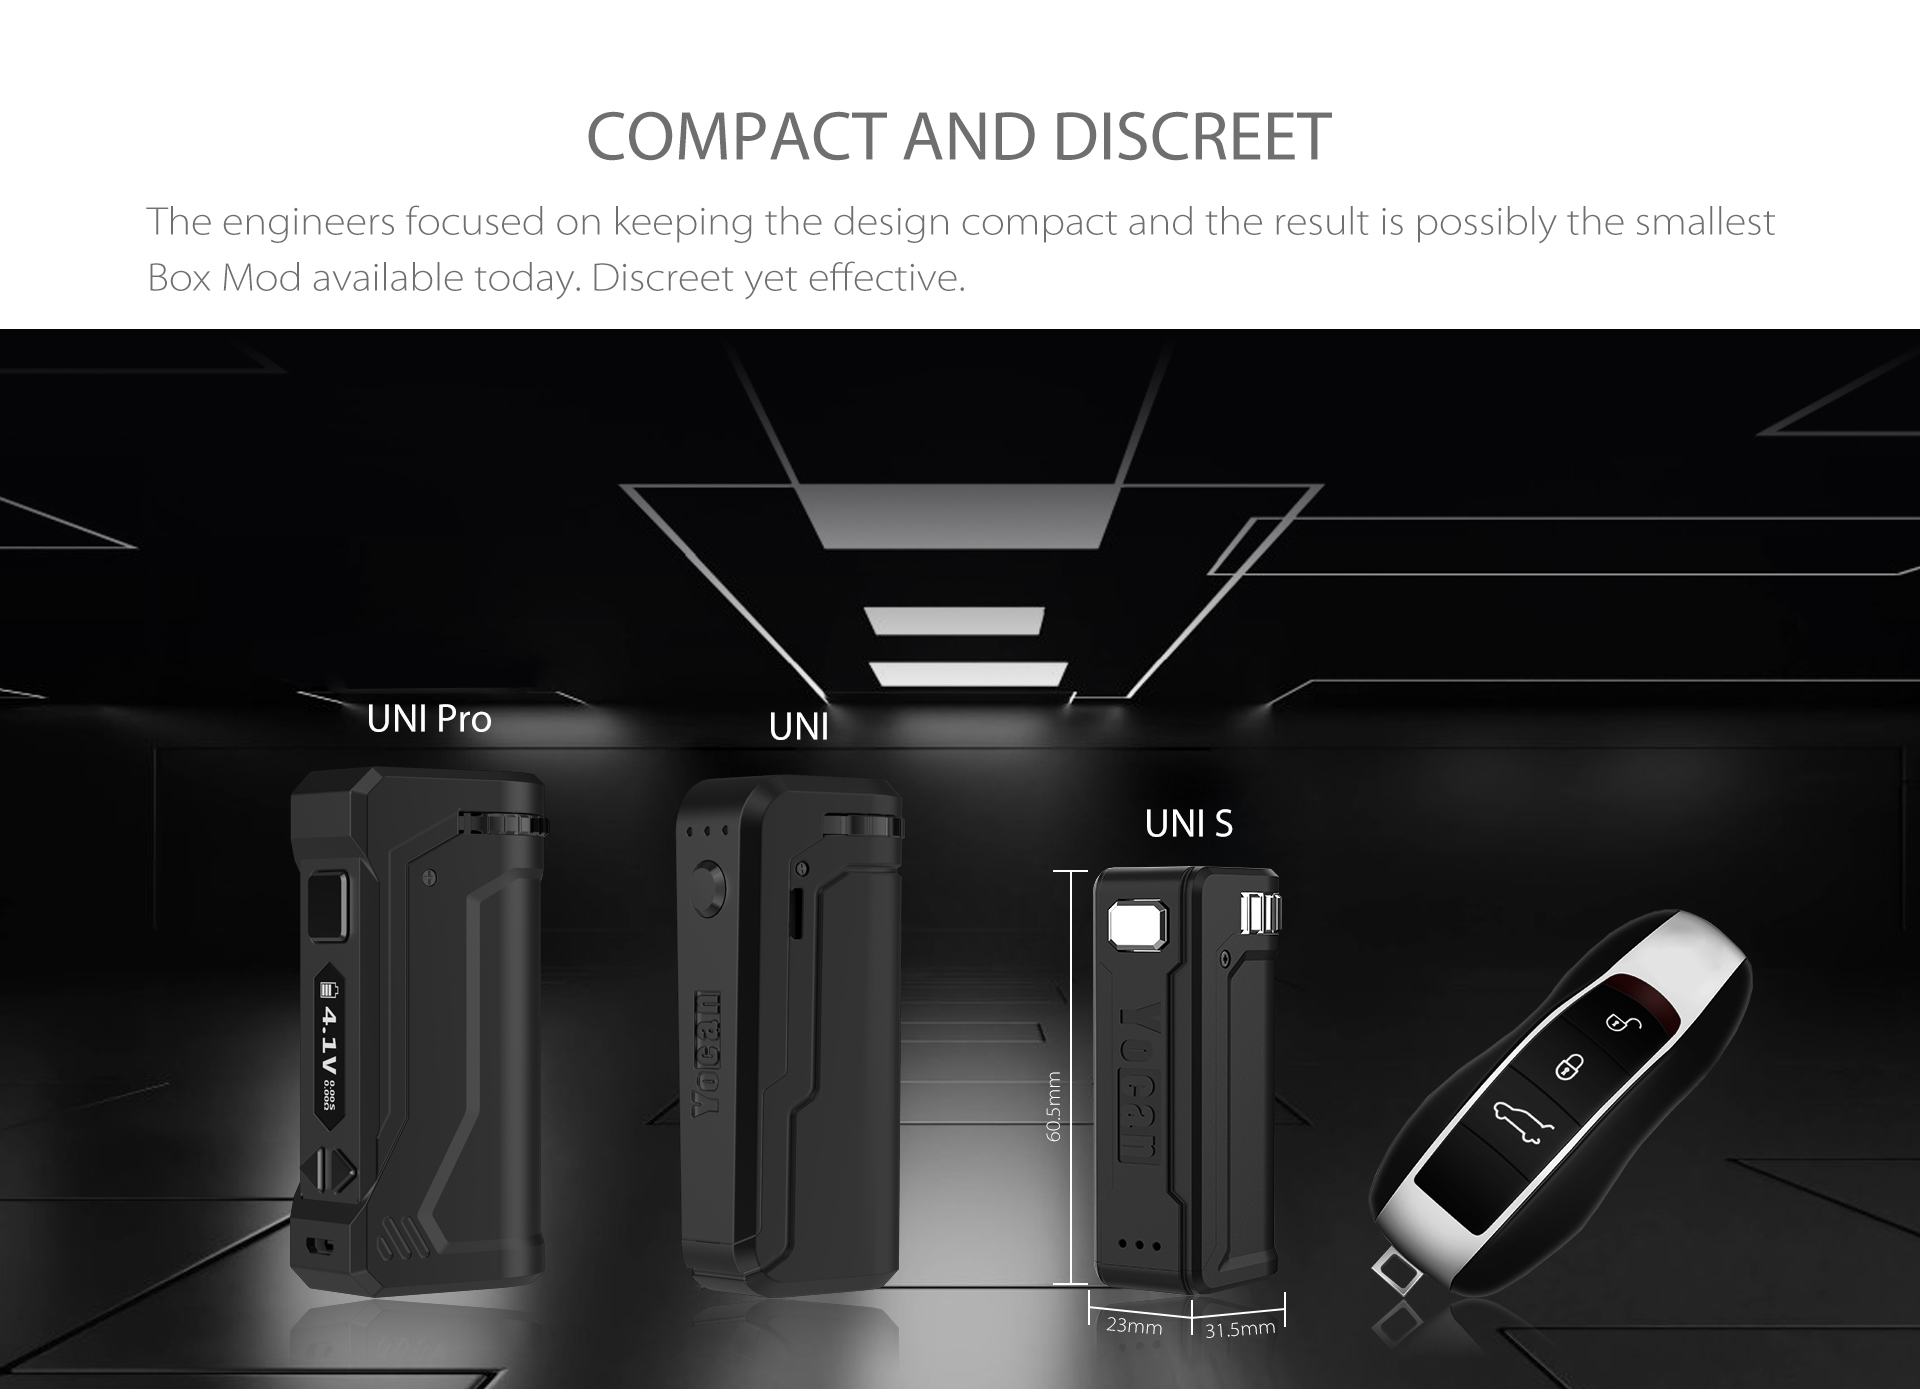 Yocan UNI S Box Mod is a compact and discreet on the go vape device.